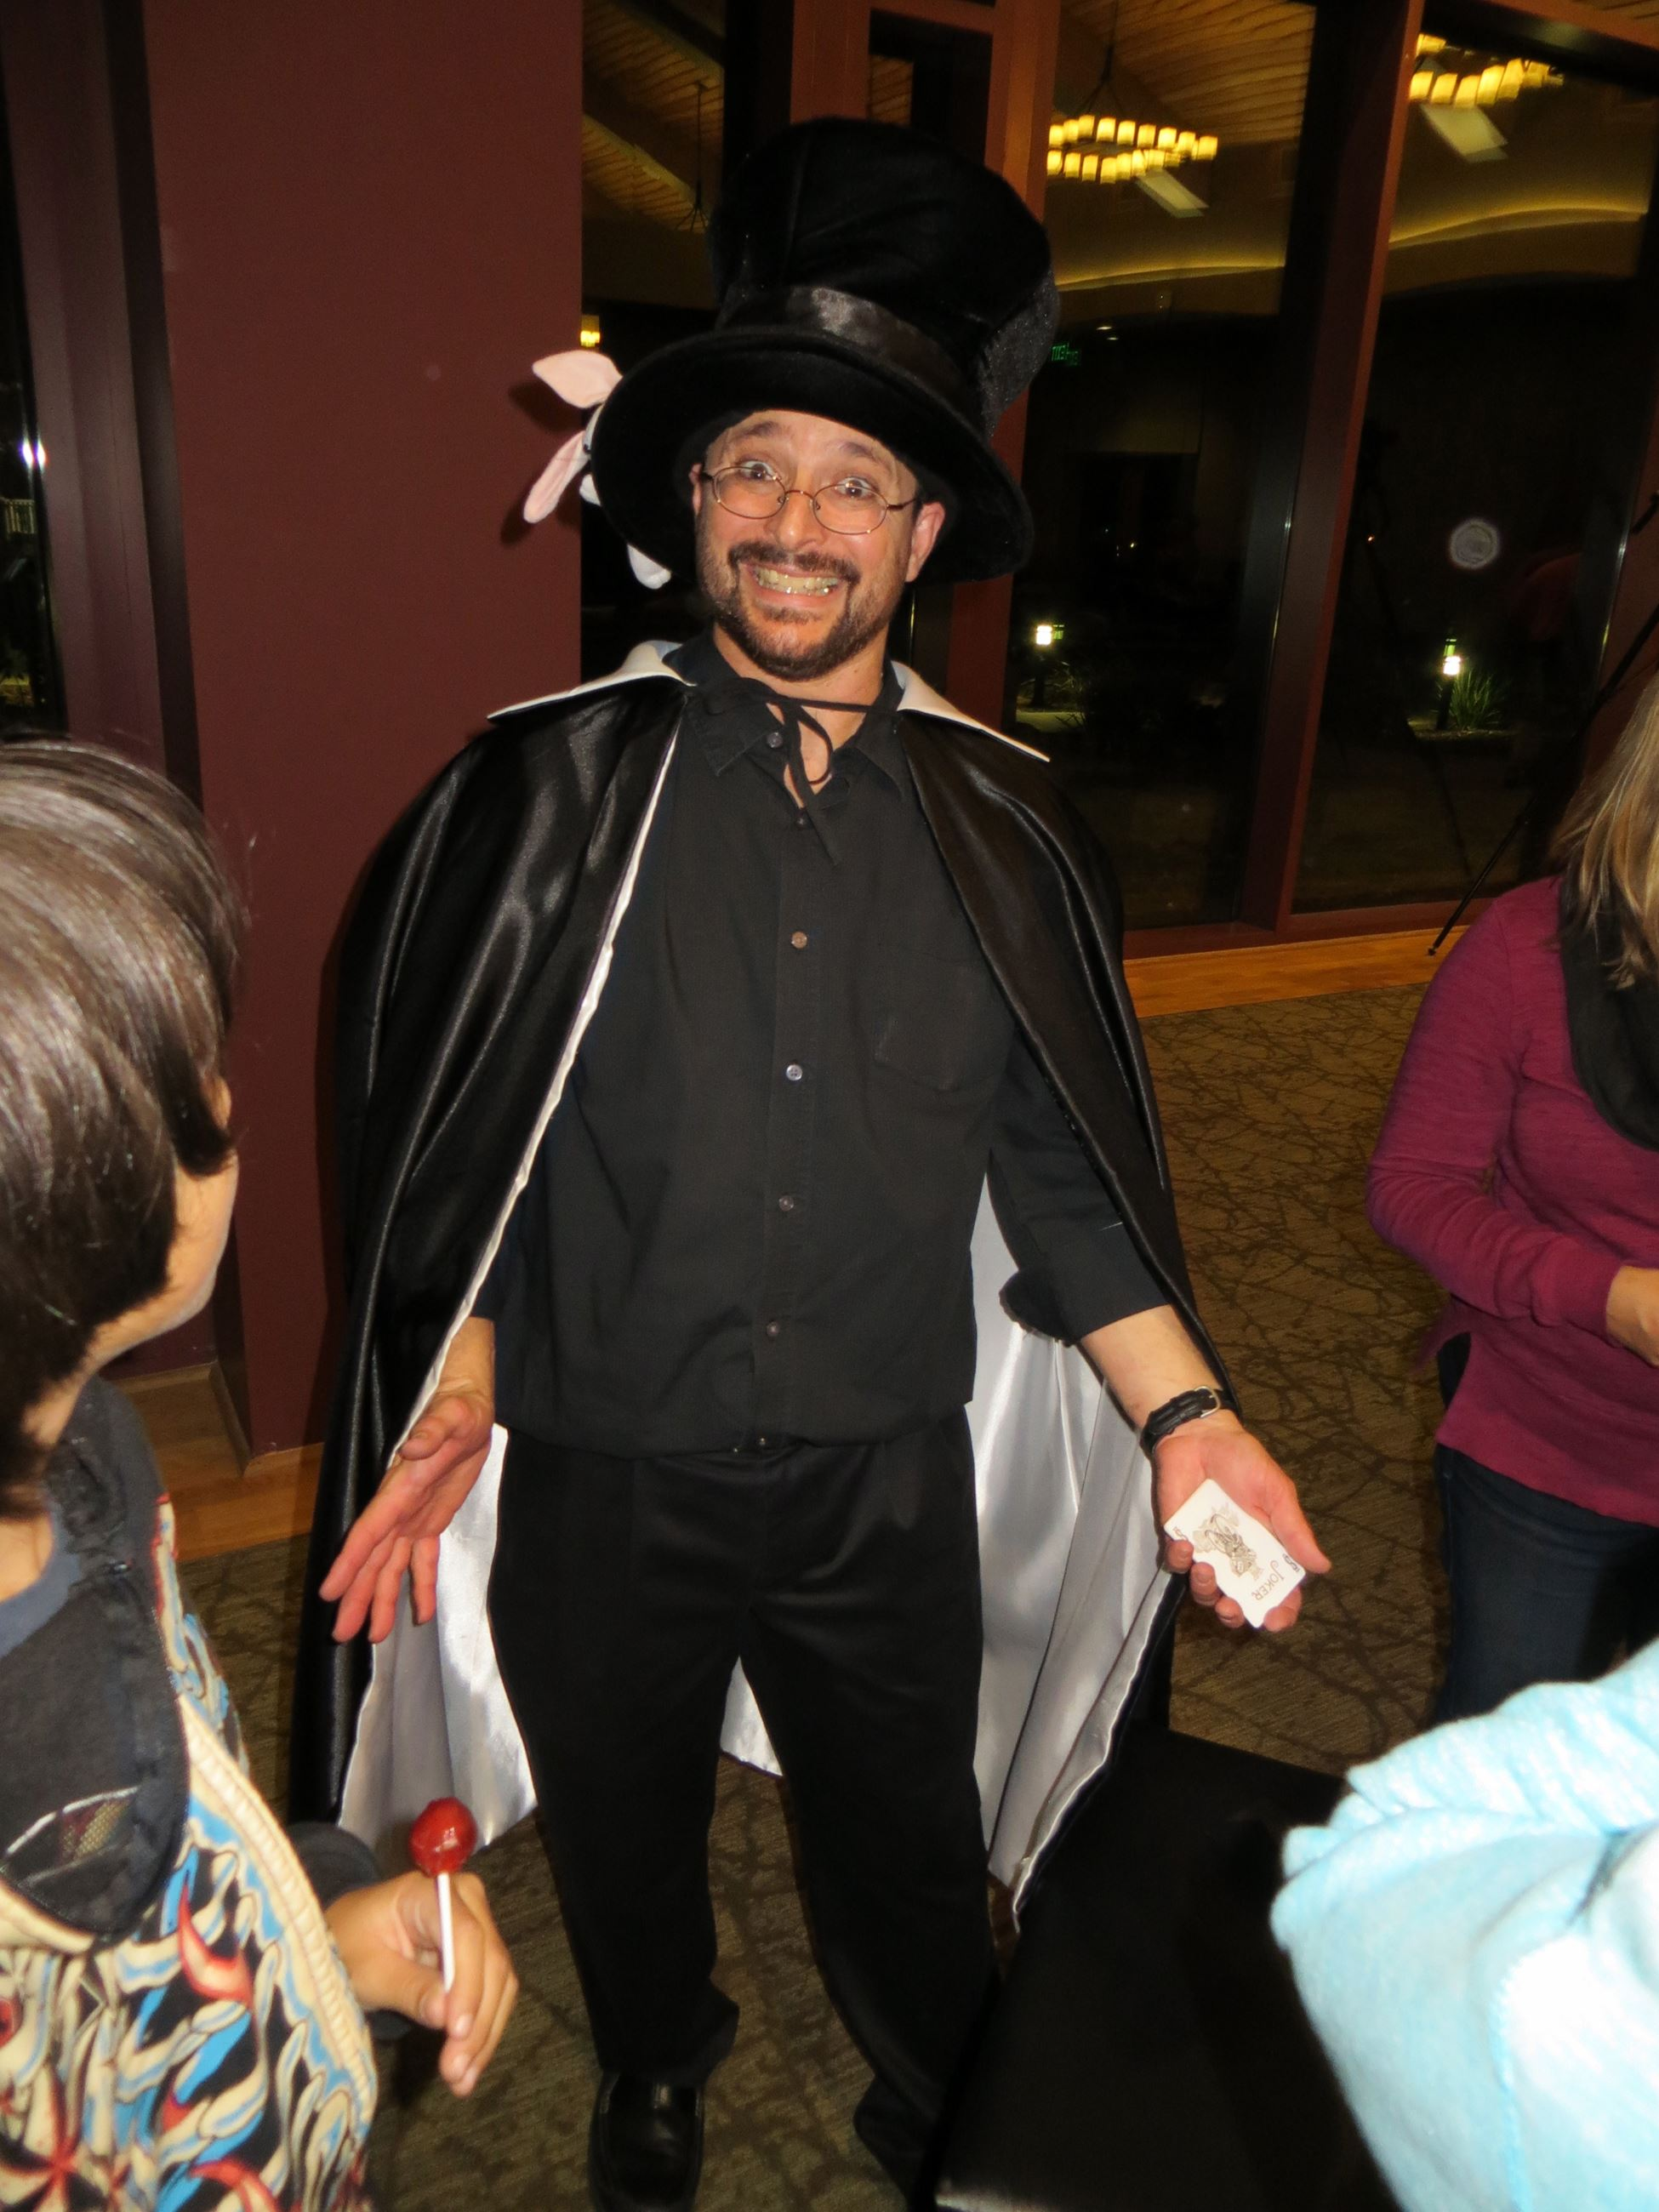 Smiling Magician in Black Cape